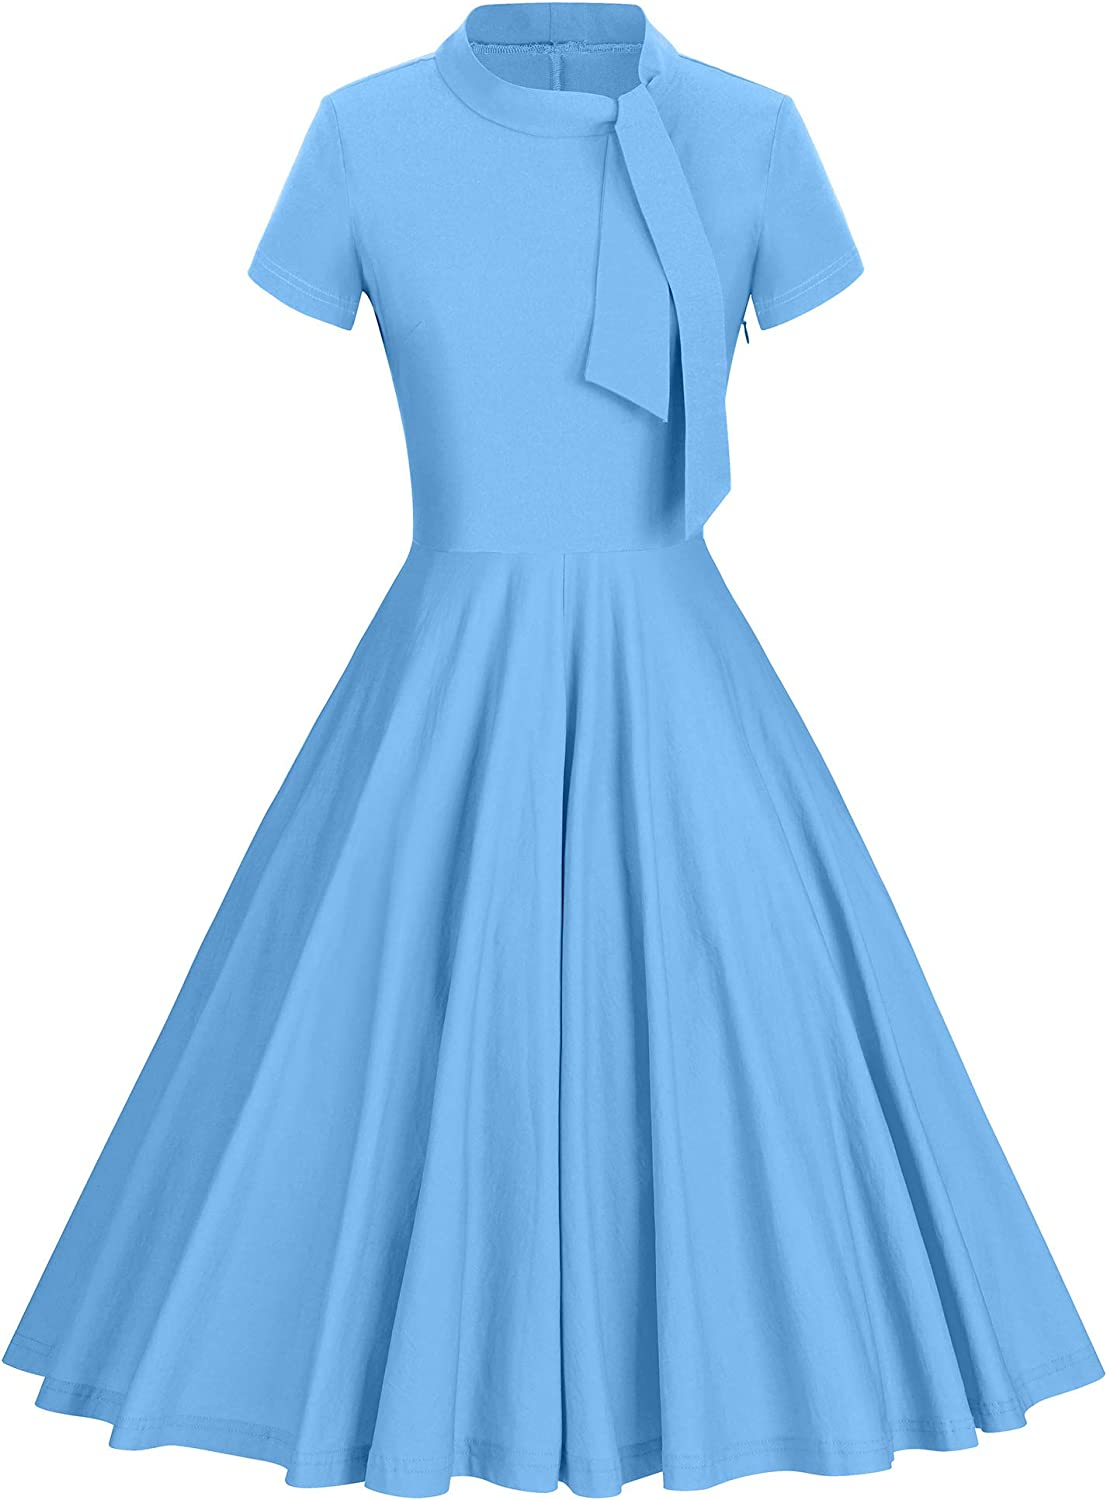 GownTown Women's Retro Style Half Collar Casual Party Swing Dress with Pocket